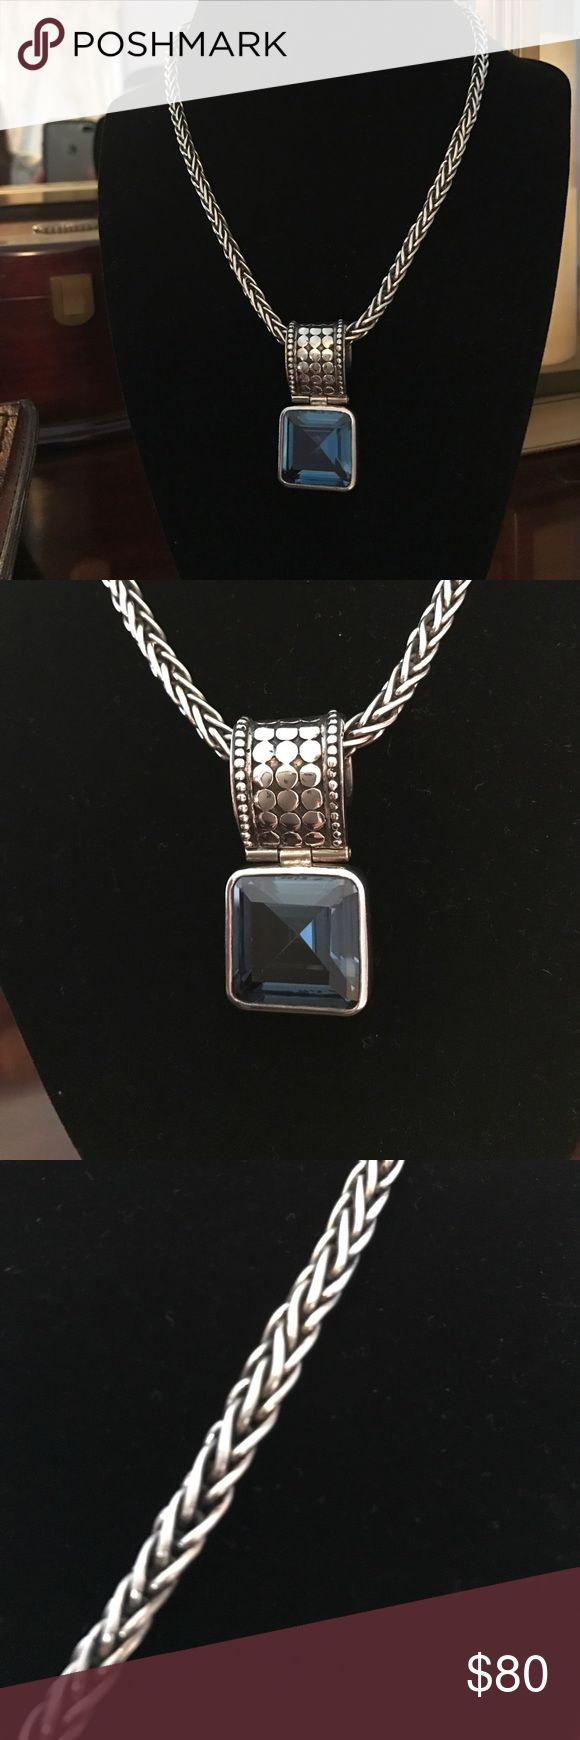 Silpada Silver Rope Chain with blue stone pendant Beautiful Silpada necklace. Thick silver rope chain with blue stone pendant. Silpada Jewelry Necklaces